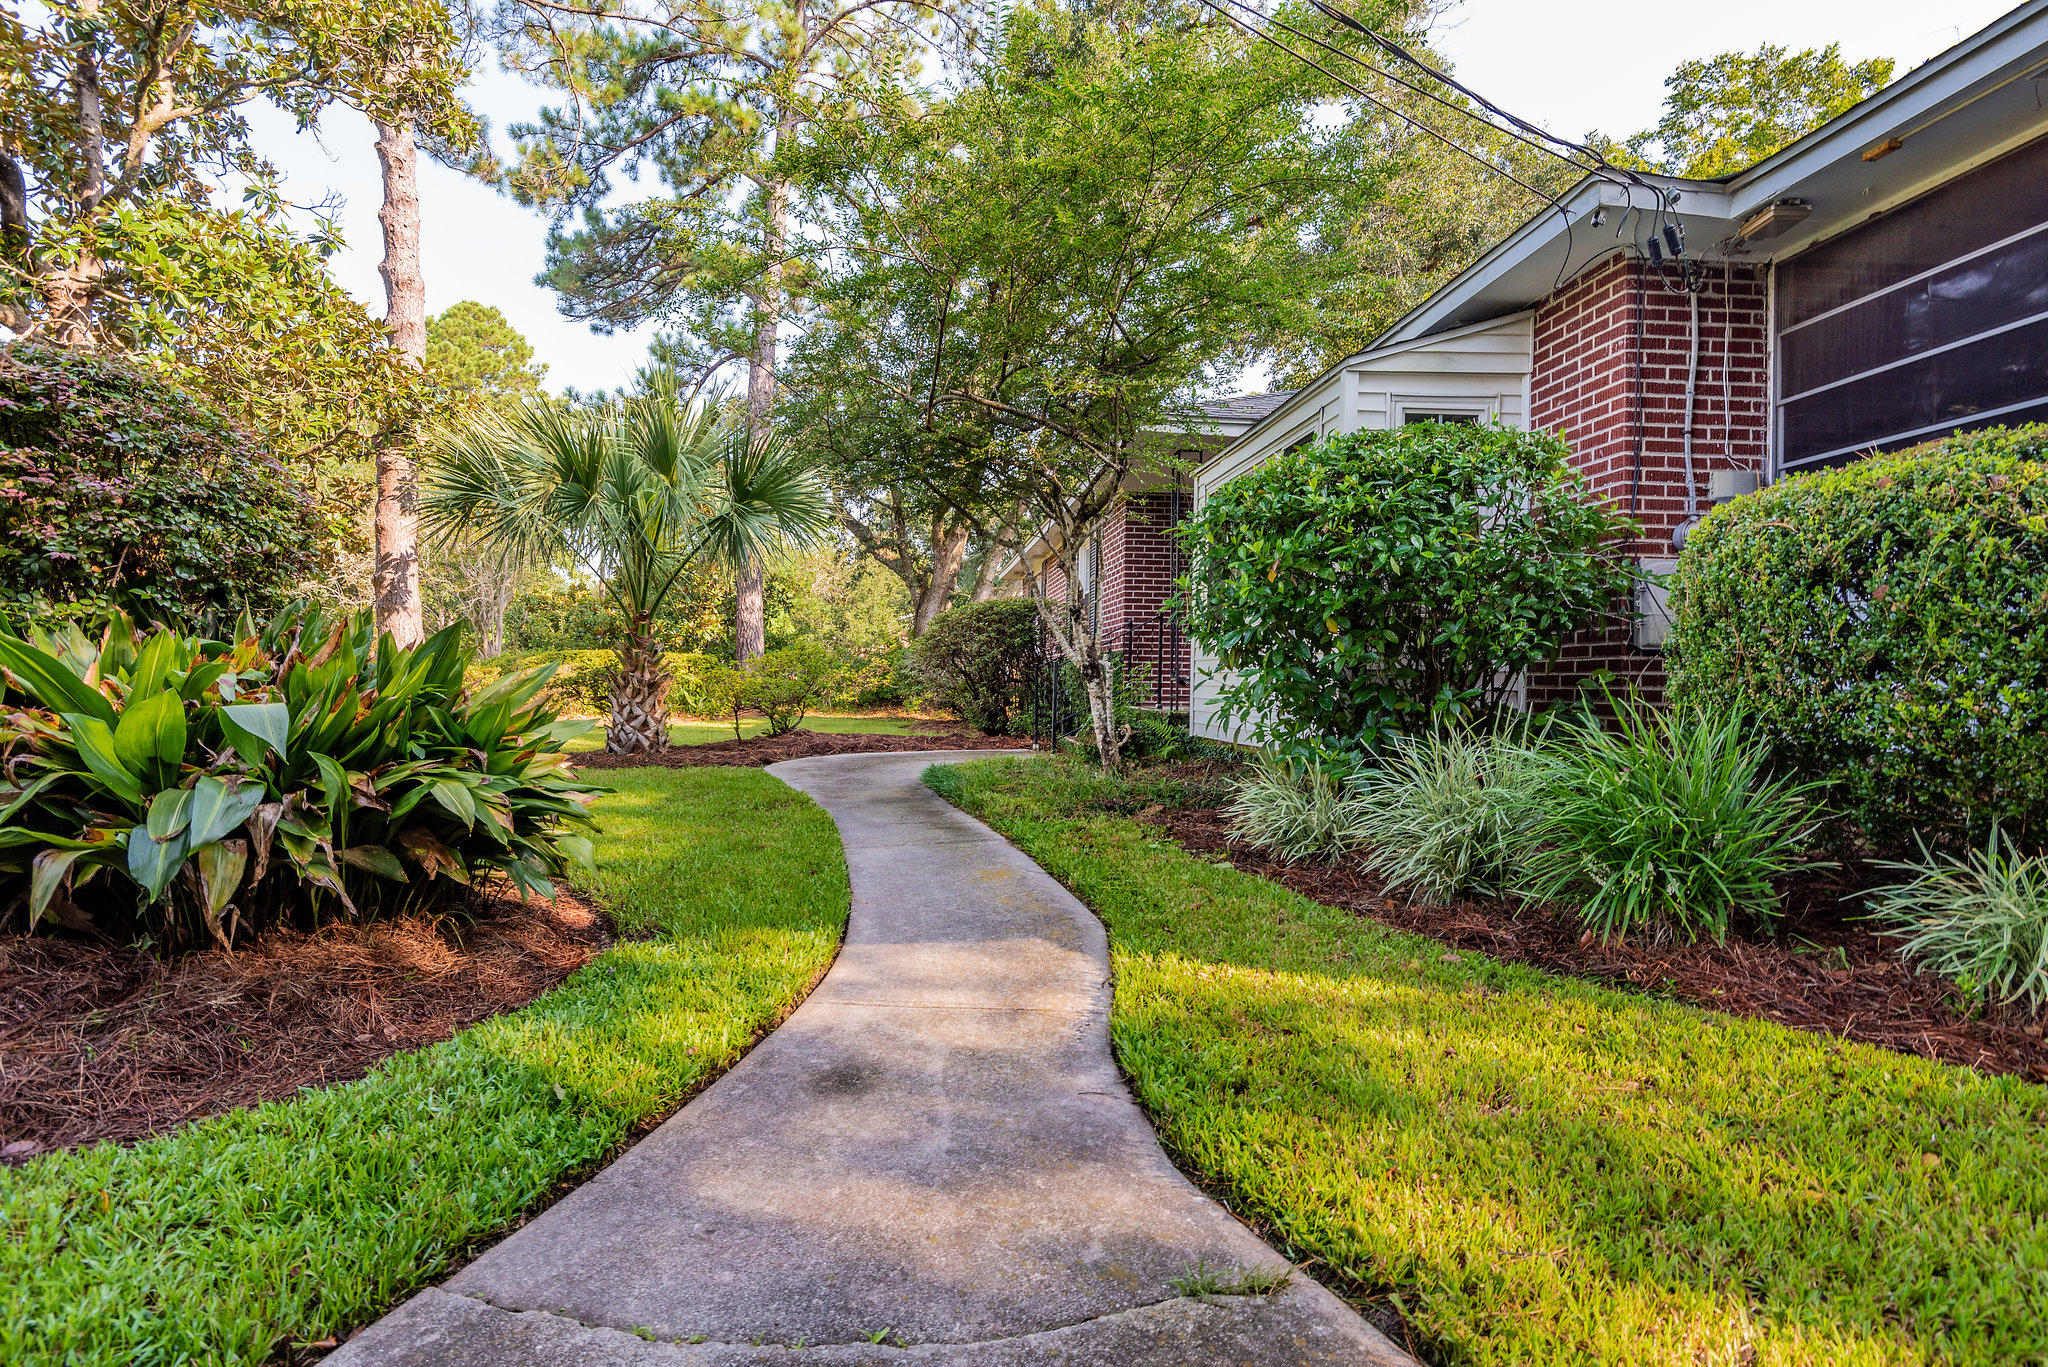 Wappoo Shores Homes For Sale - 308 Jean, Charleston, SC - 3